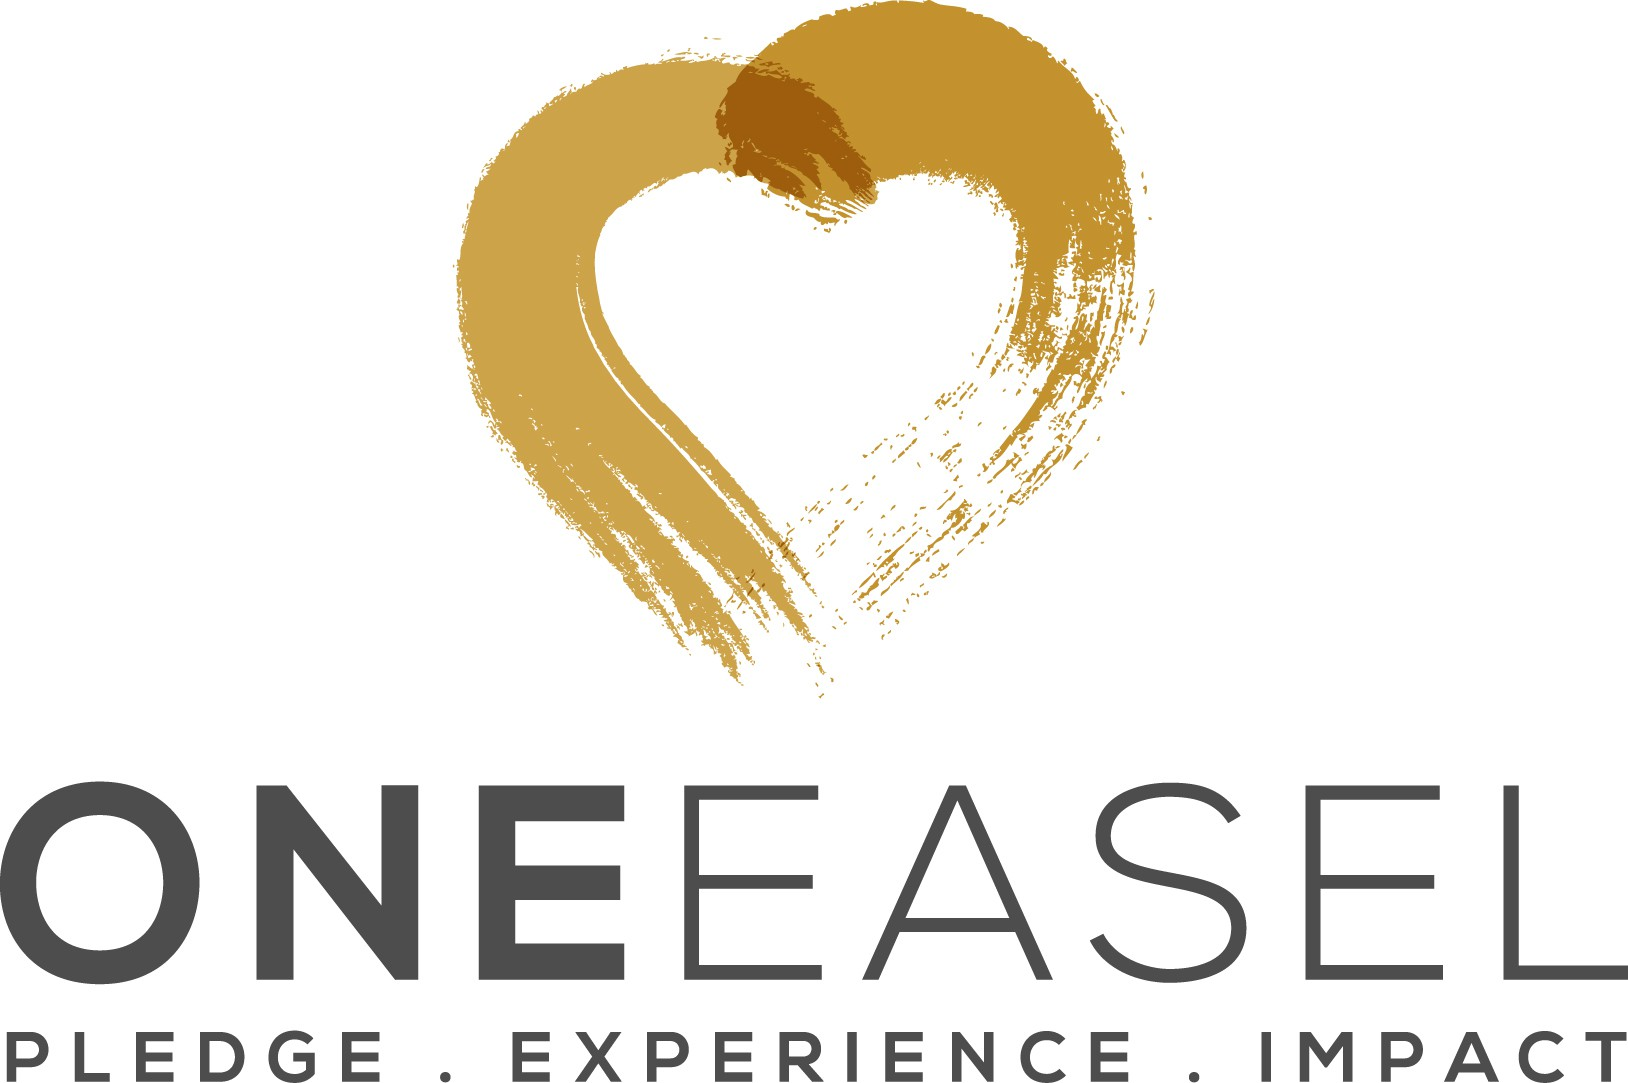 need a logo that portrays charity and giving for our art easel program